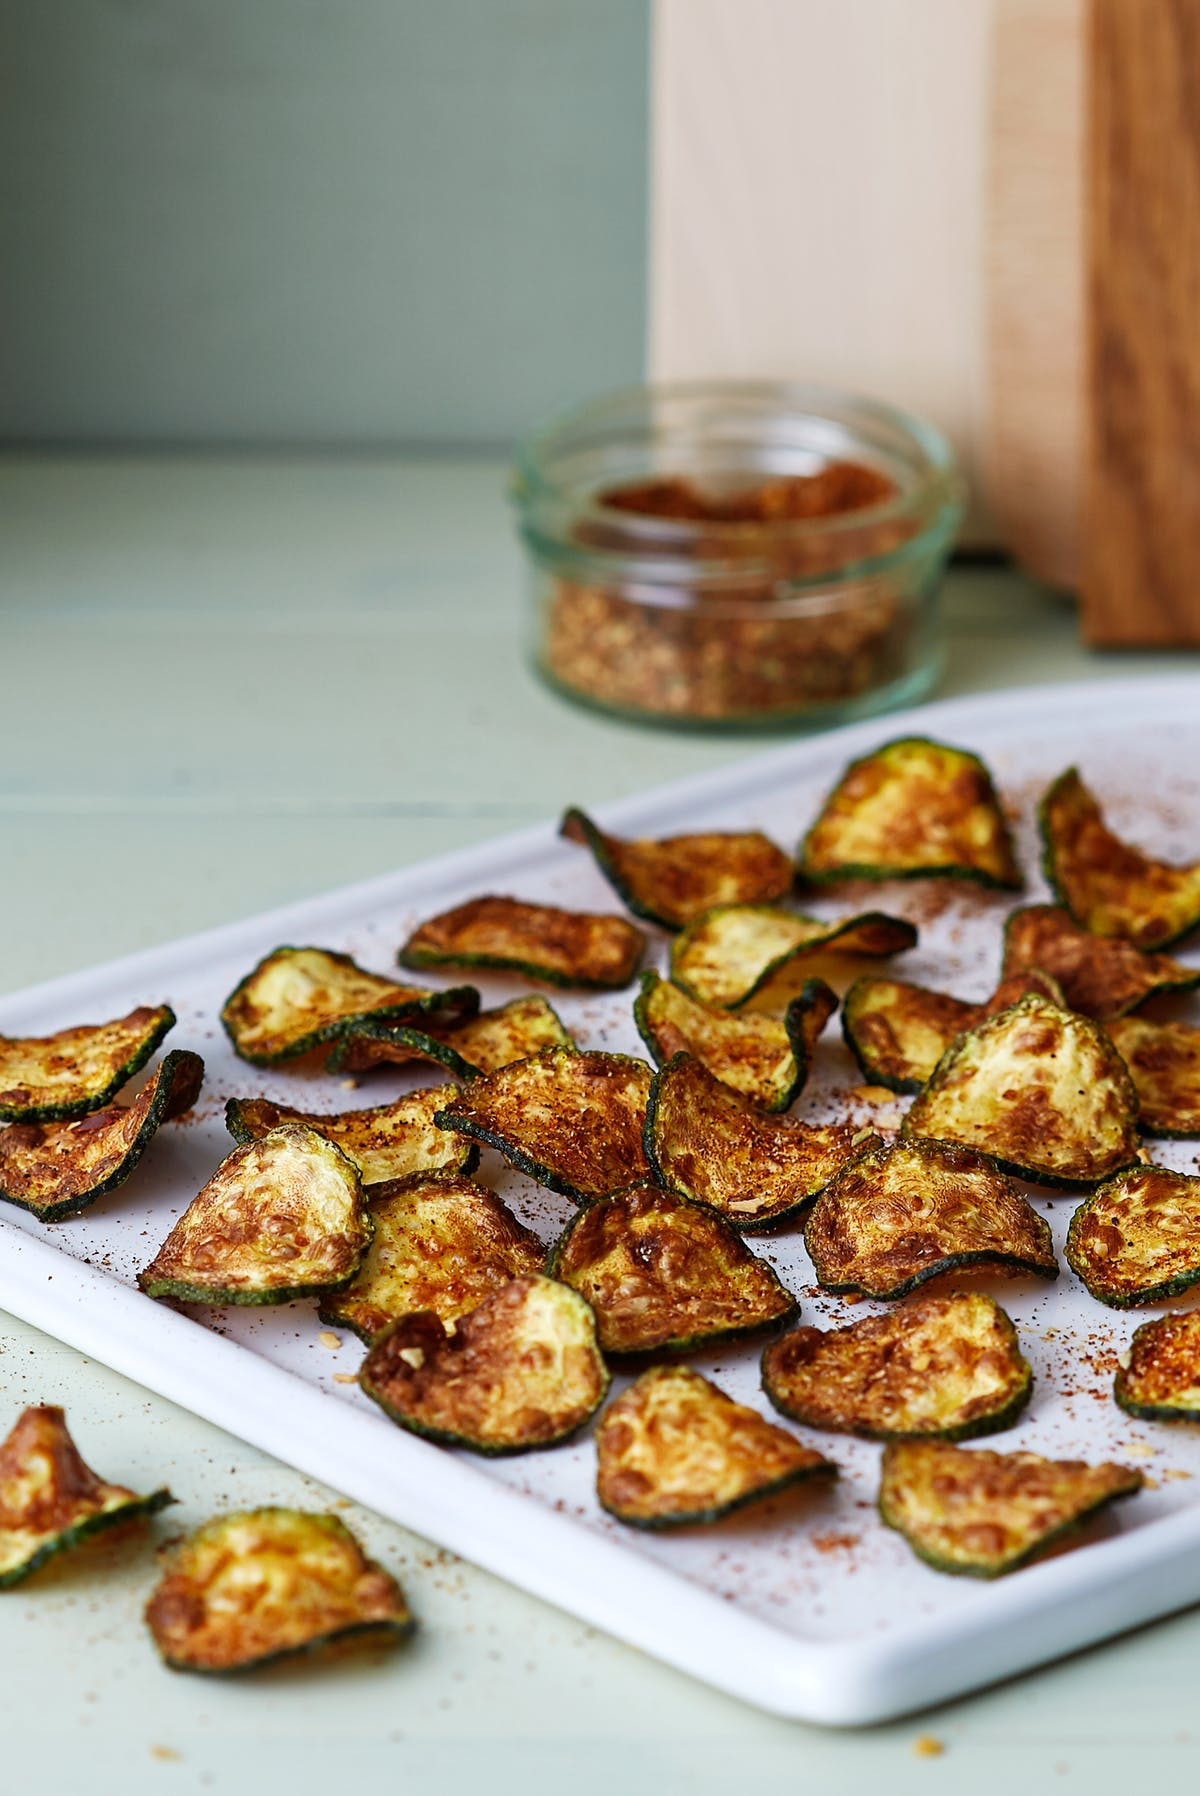 Low-carb zucchini nacho chips